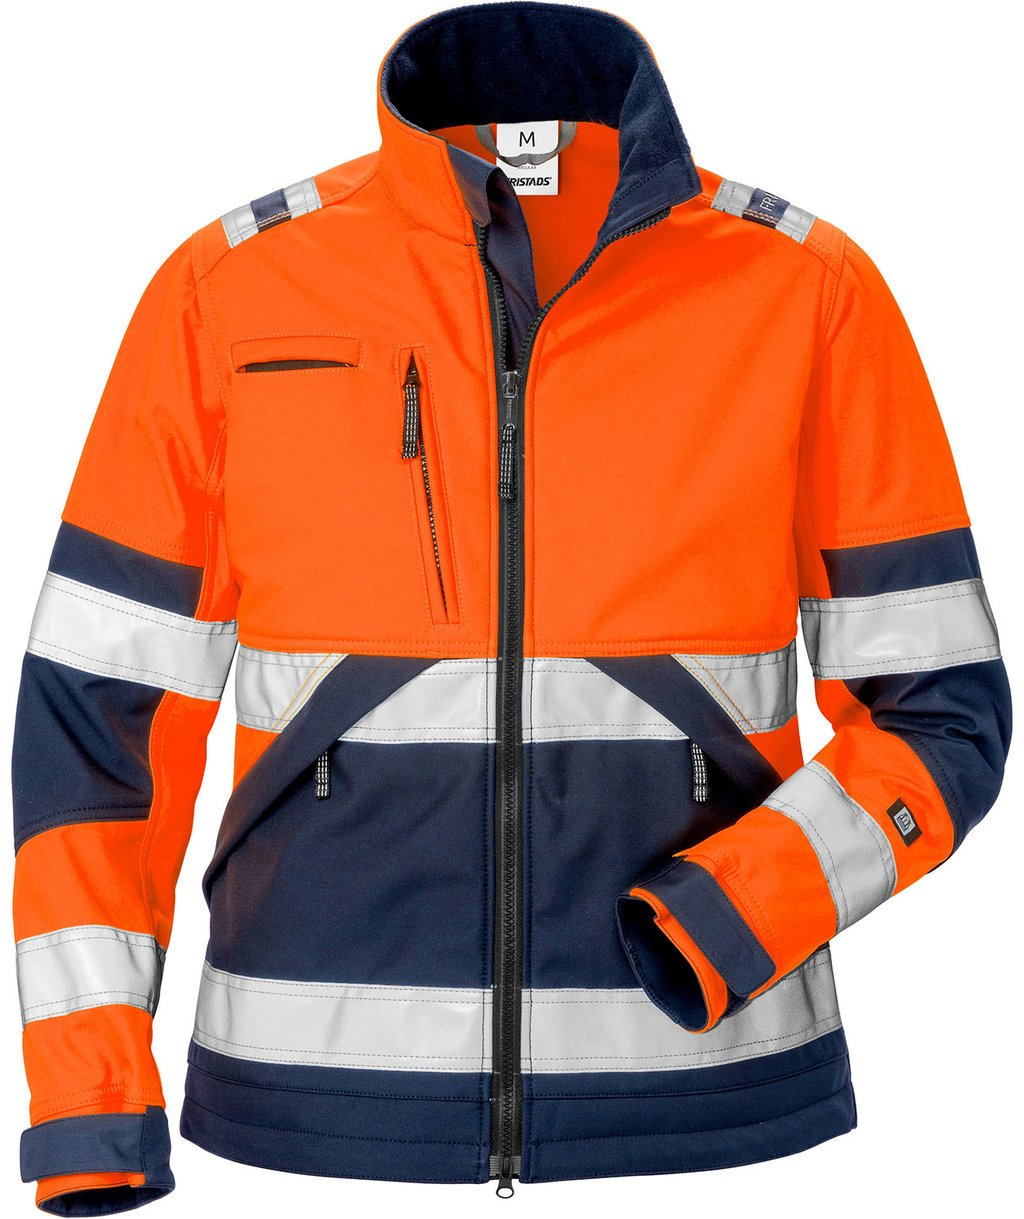 Fristads Damen Softshelljacke, Hi-Vis Orange/Marine